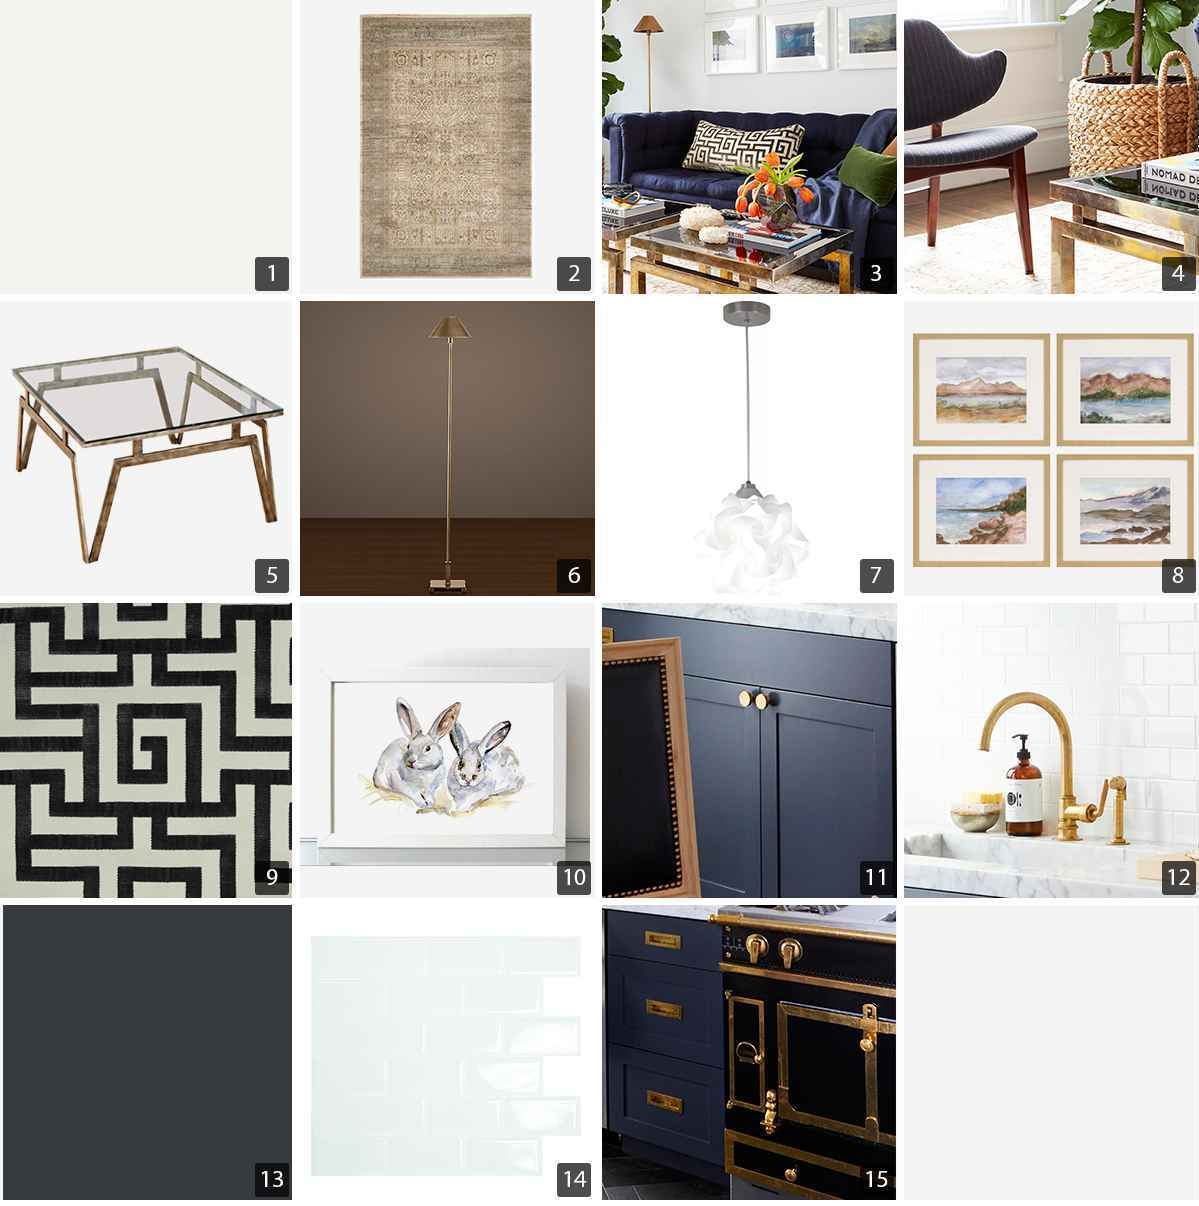 Collage of home products including rug, sofa, coffee table, light, and kitchen range photo